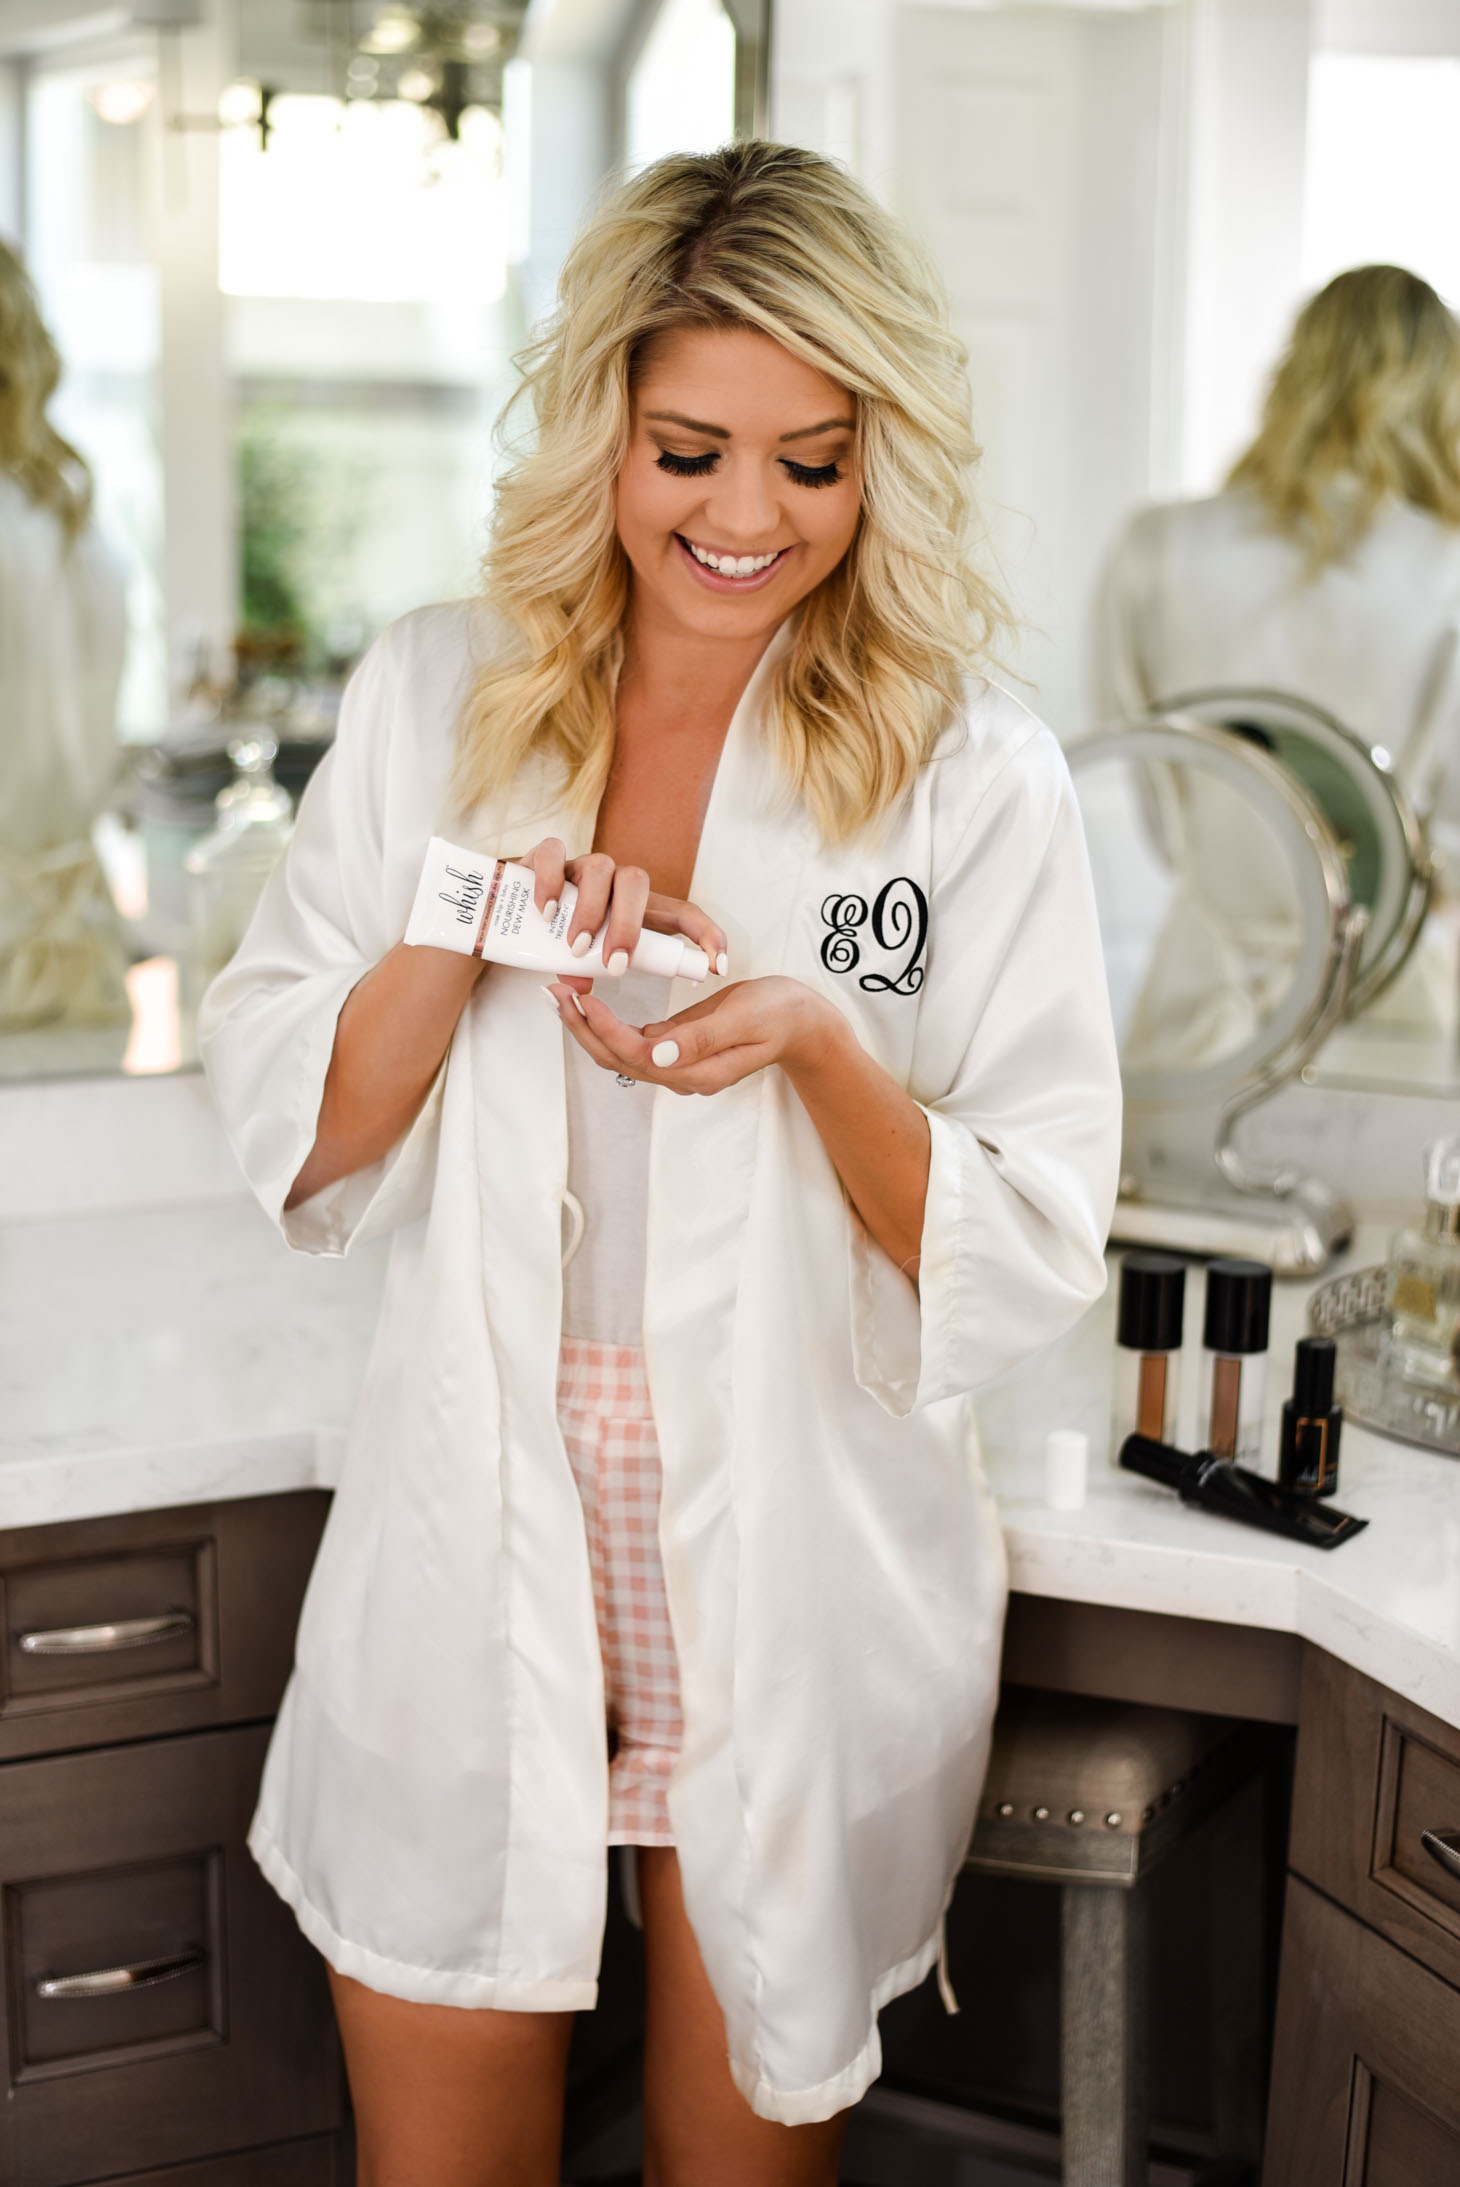 Erin Elizabeth of Wink and a Twirl shares Whish Beauty Cosmetic and Skincare Line featuring All Natural Ingredients